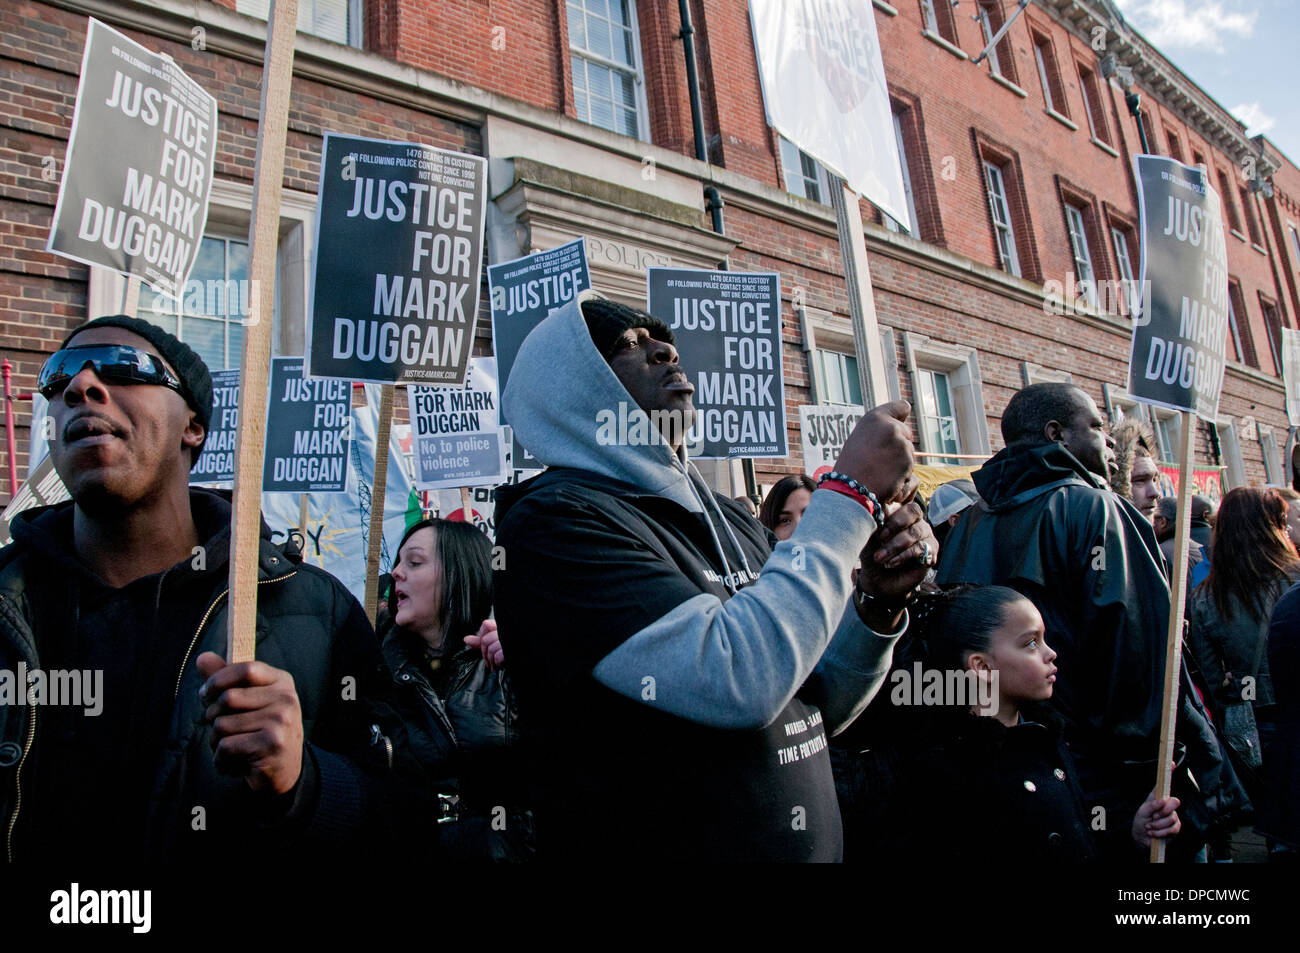 Family Family friends Vigil Mark Duggan killed in 2011 police officer following inquest judgement of lawful killing 11.1.14 - Stock Image